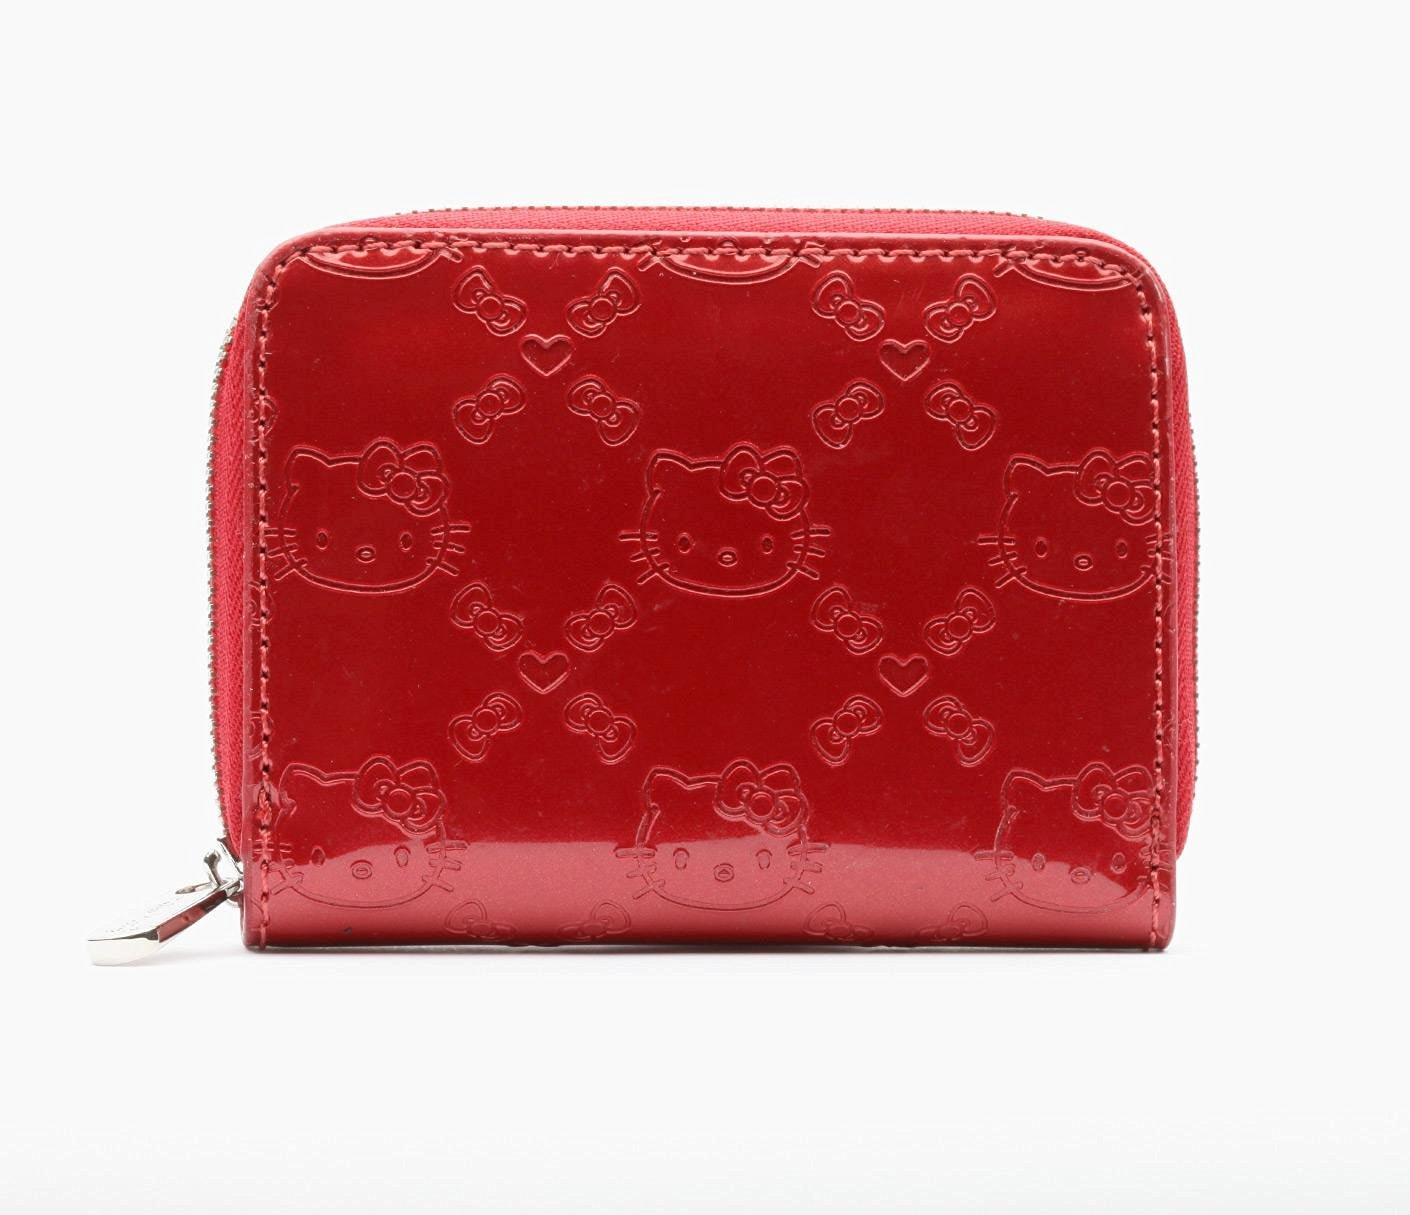 Buy Hello Kitty Small Shiny RED Embossed Wallet in Cheap Price on ... 0c88afce117f2